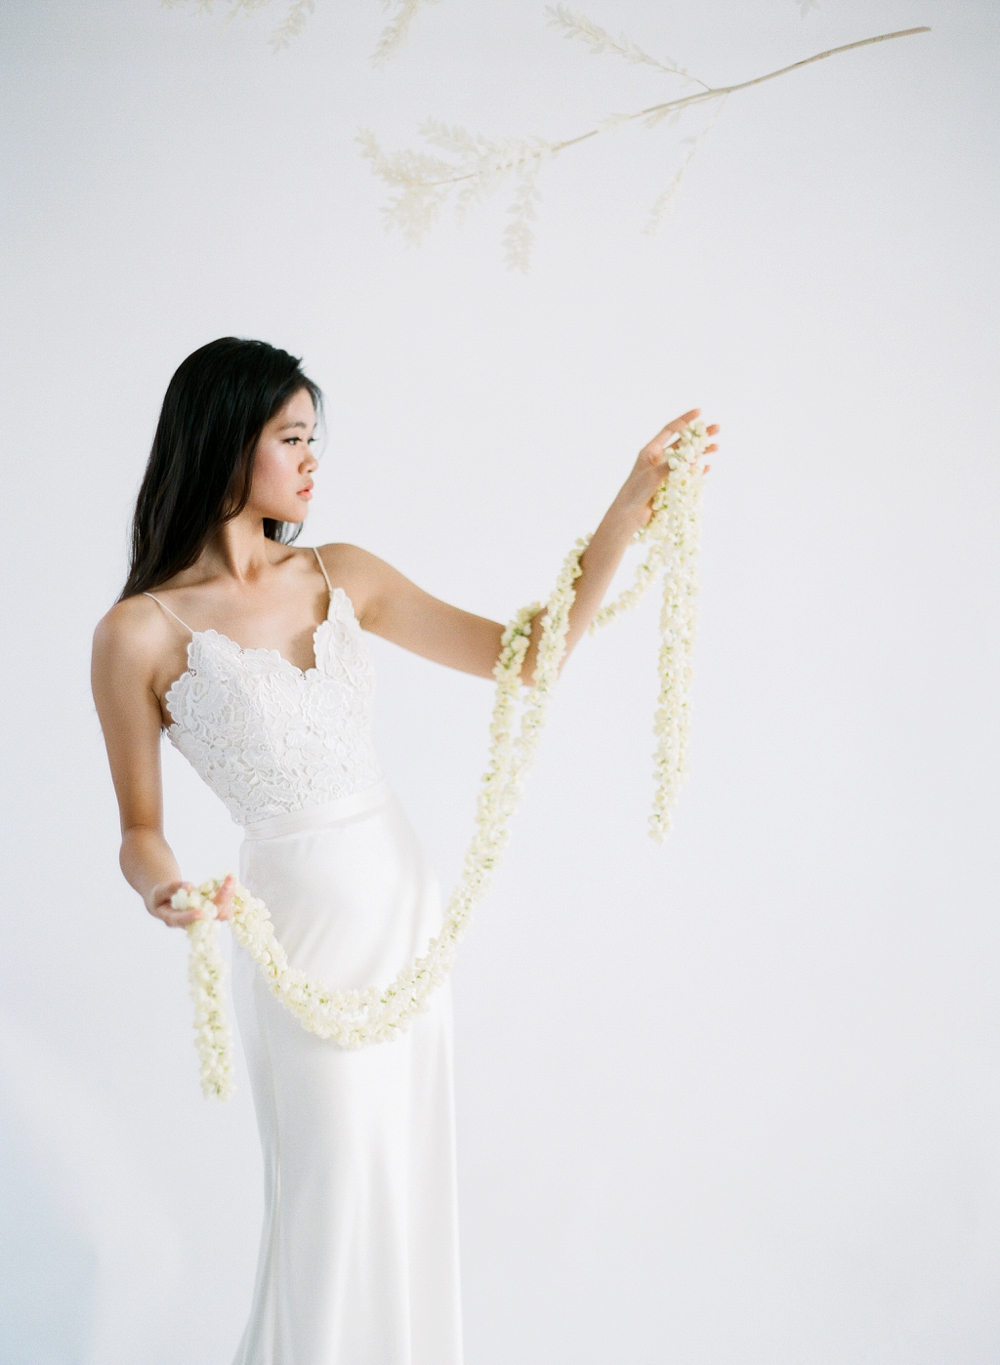 79Jasmine Inspired Bridal Editorial.jpg